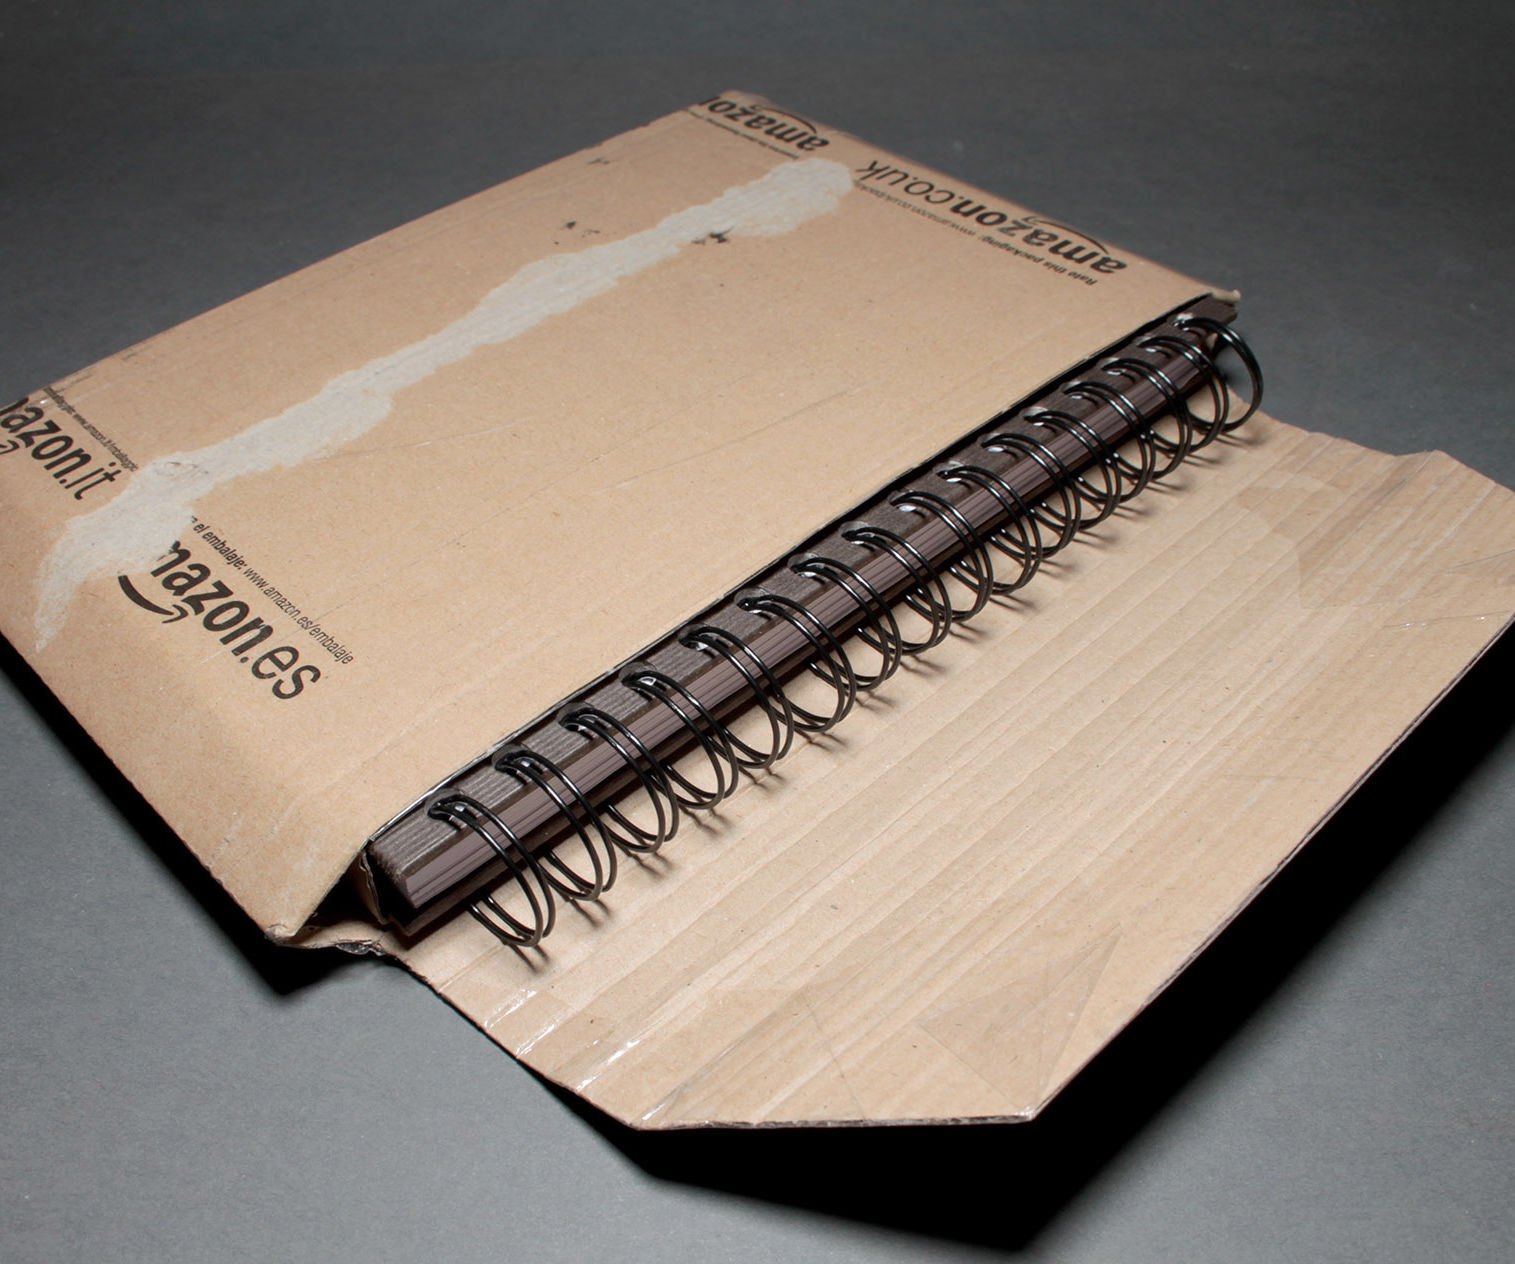 Protective cover for spiral book (or any other book) from amazon packaging (free, 10 min.)